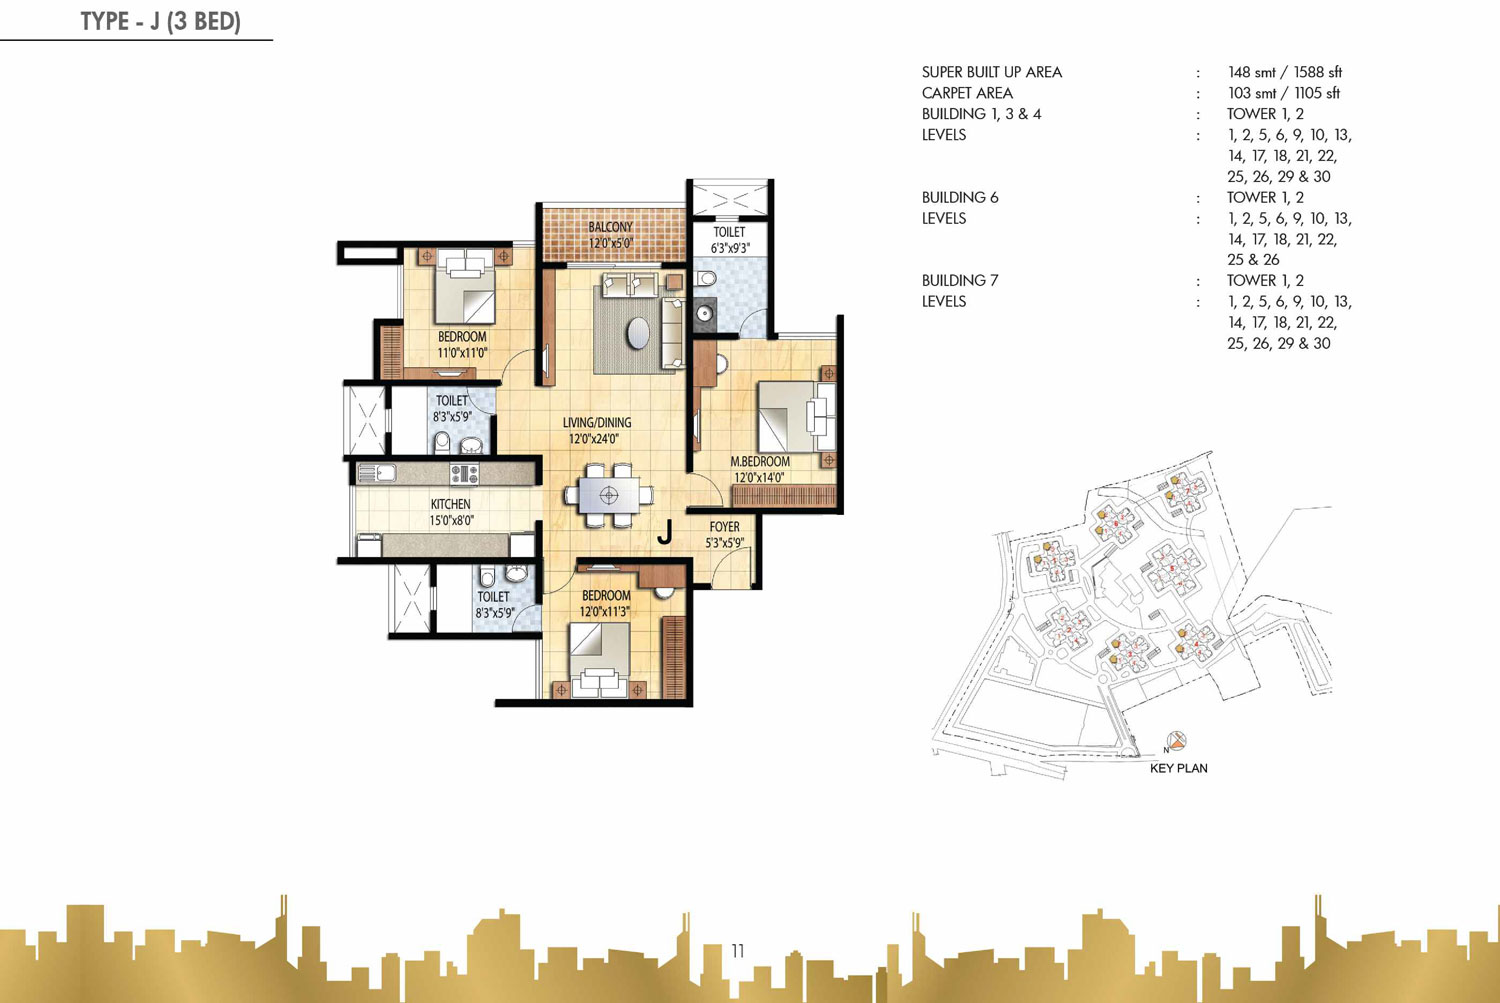 Type J - 3 Bed - 1588 Sq Ft